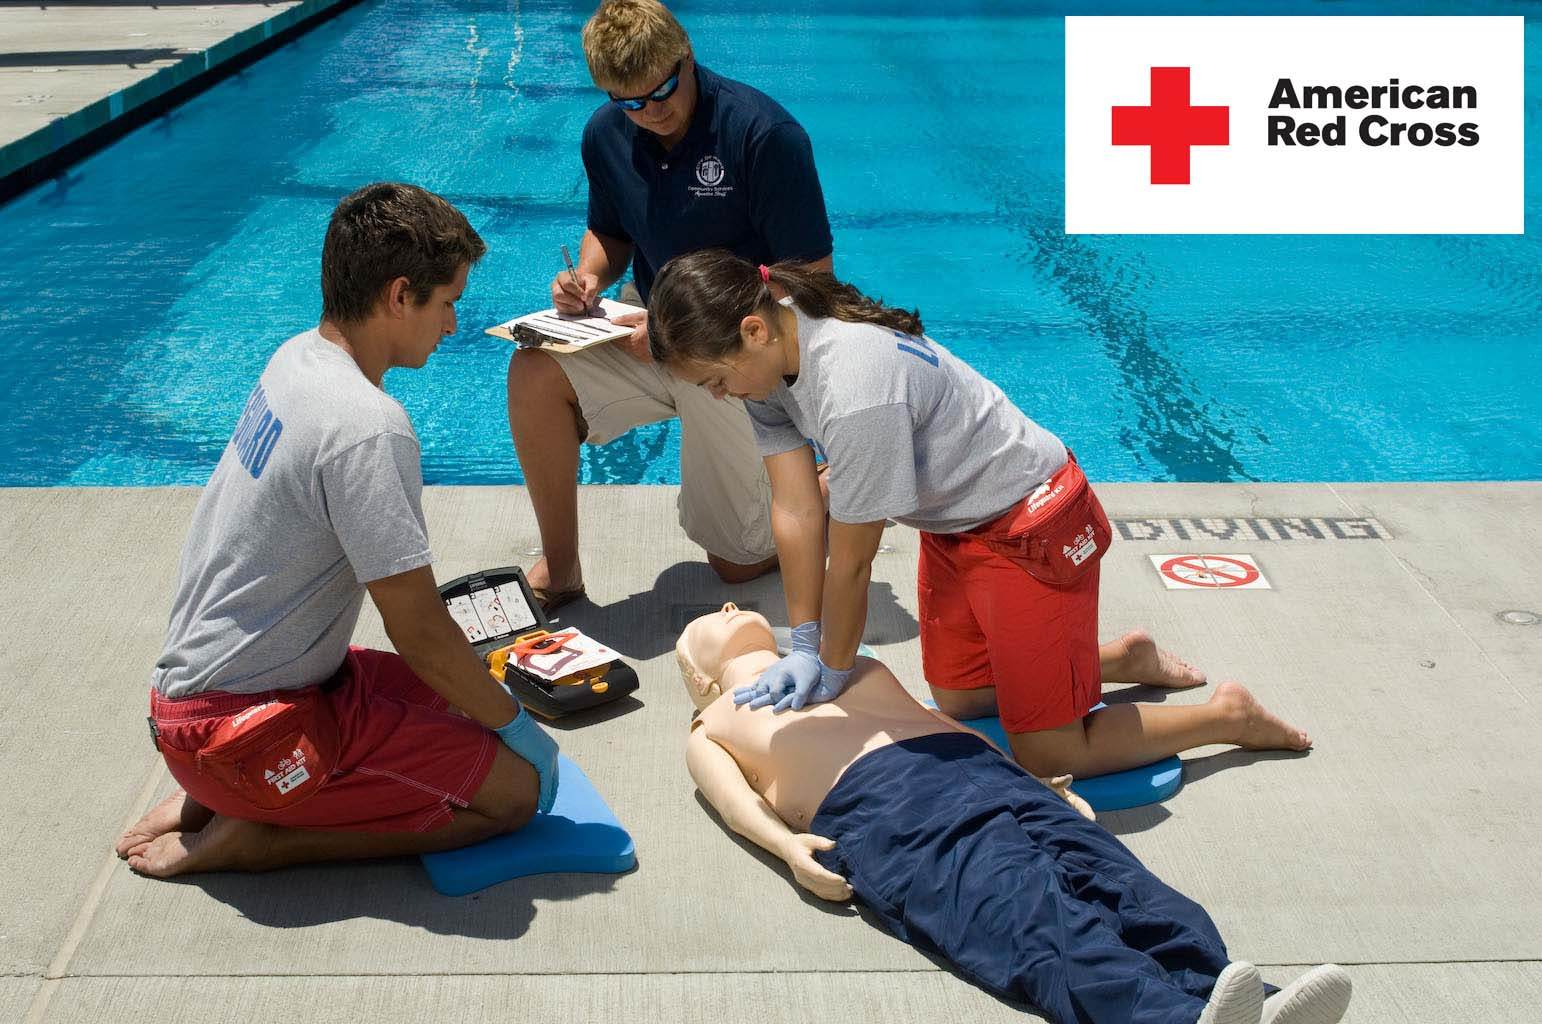 Lifeguards practicing CPR skills while instructor watches